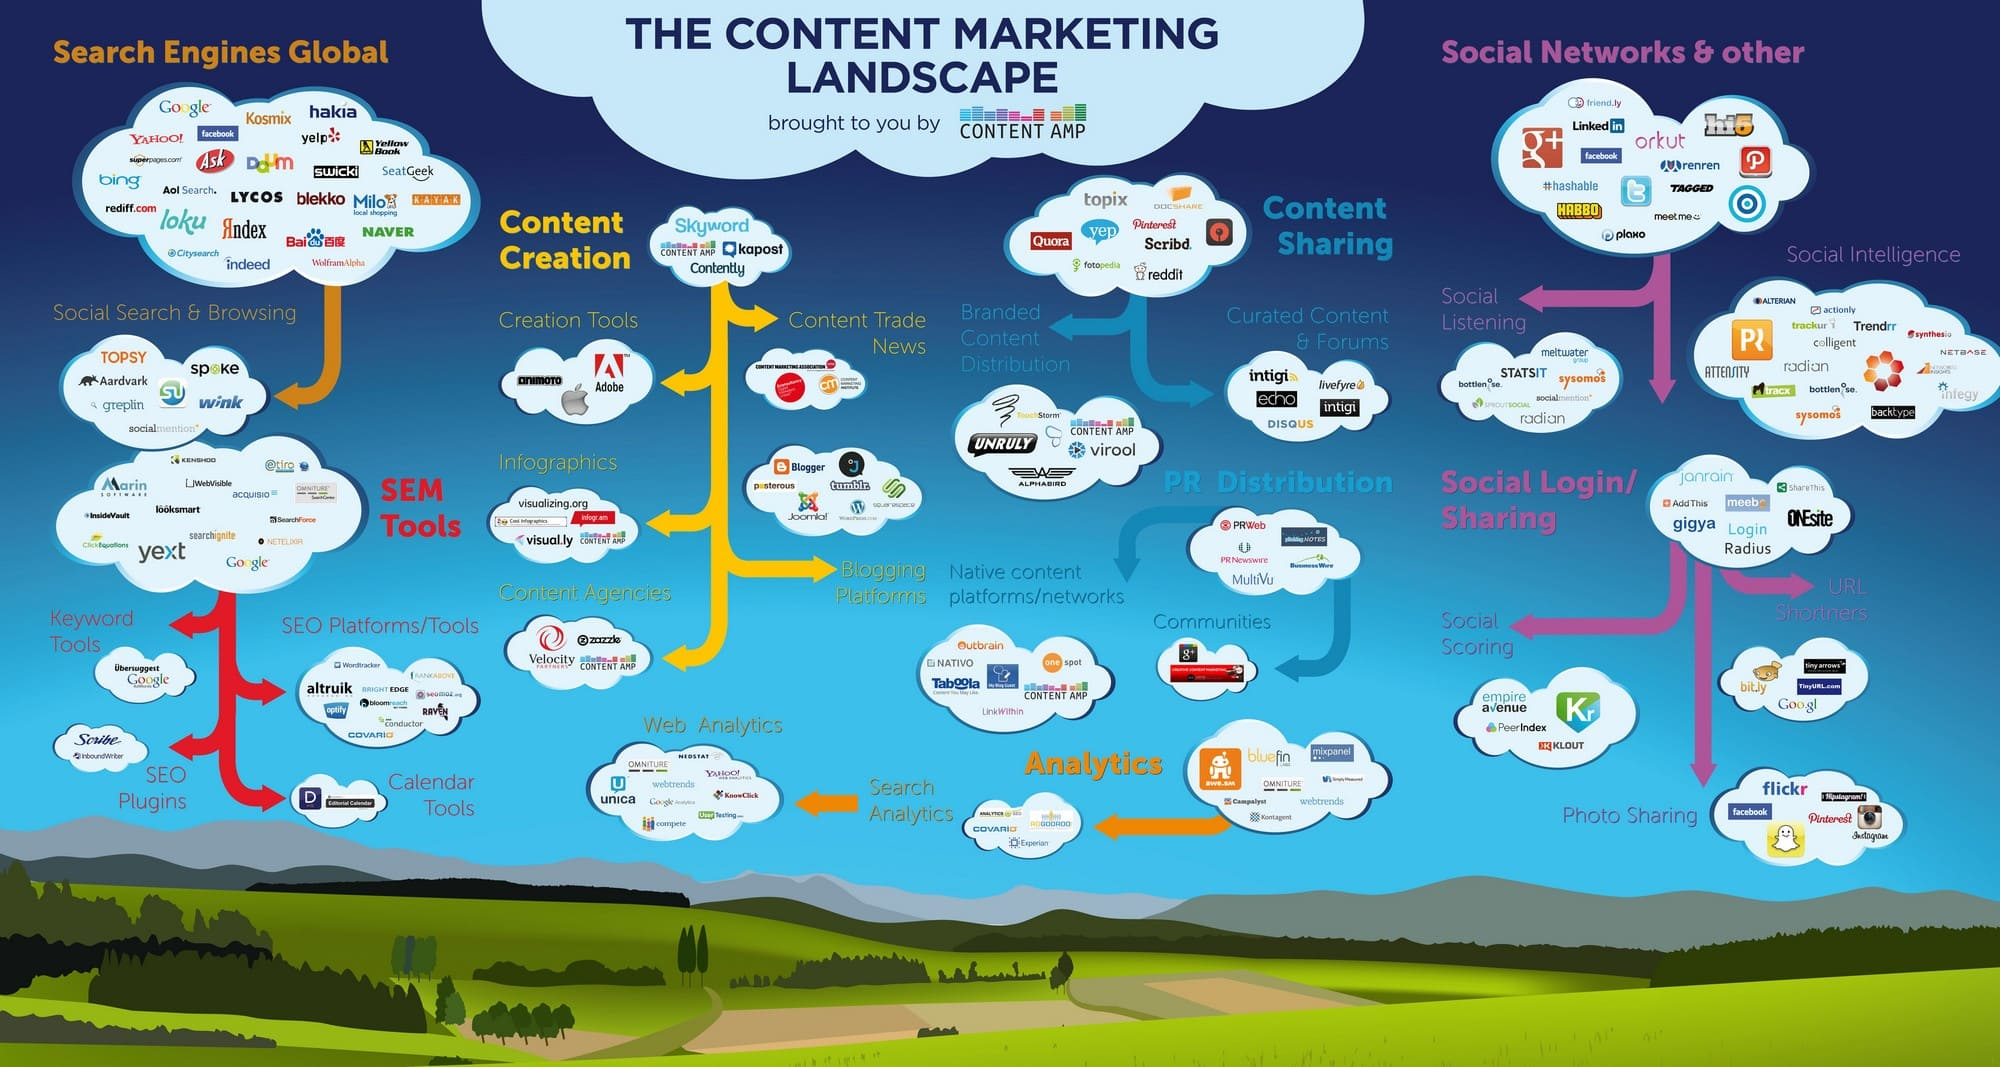 The Content Marketing Landscape Infographic